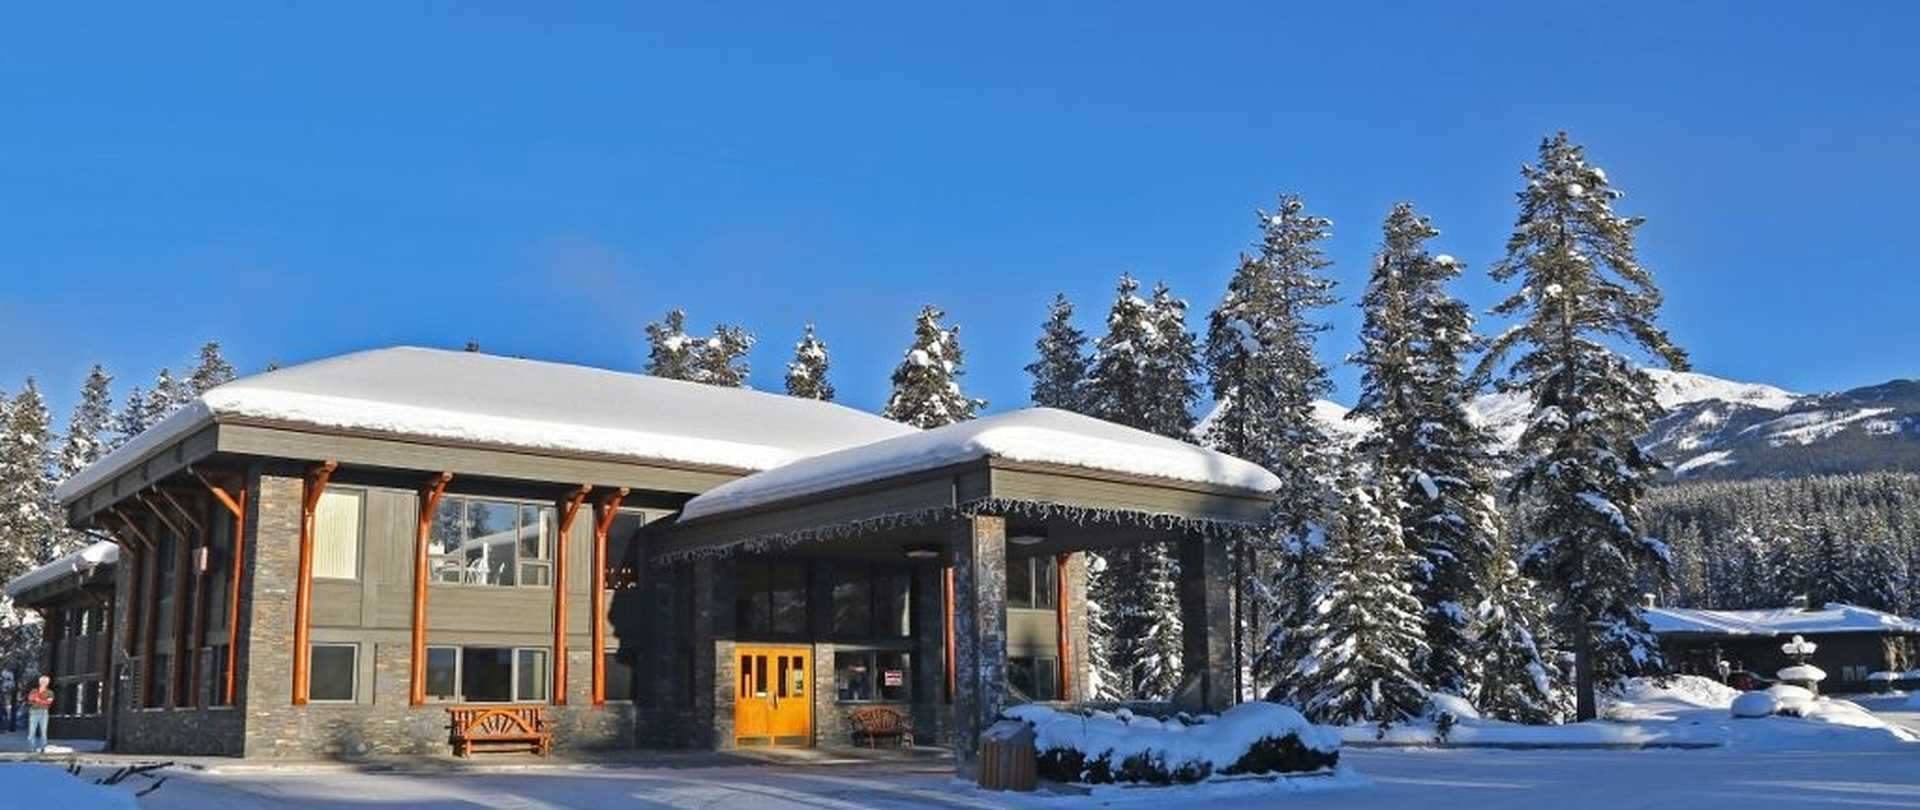 Mountaineer Lodge, Lake Louise hotel in winter